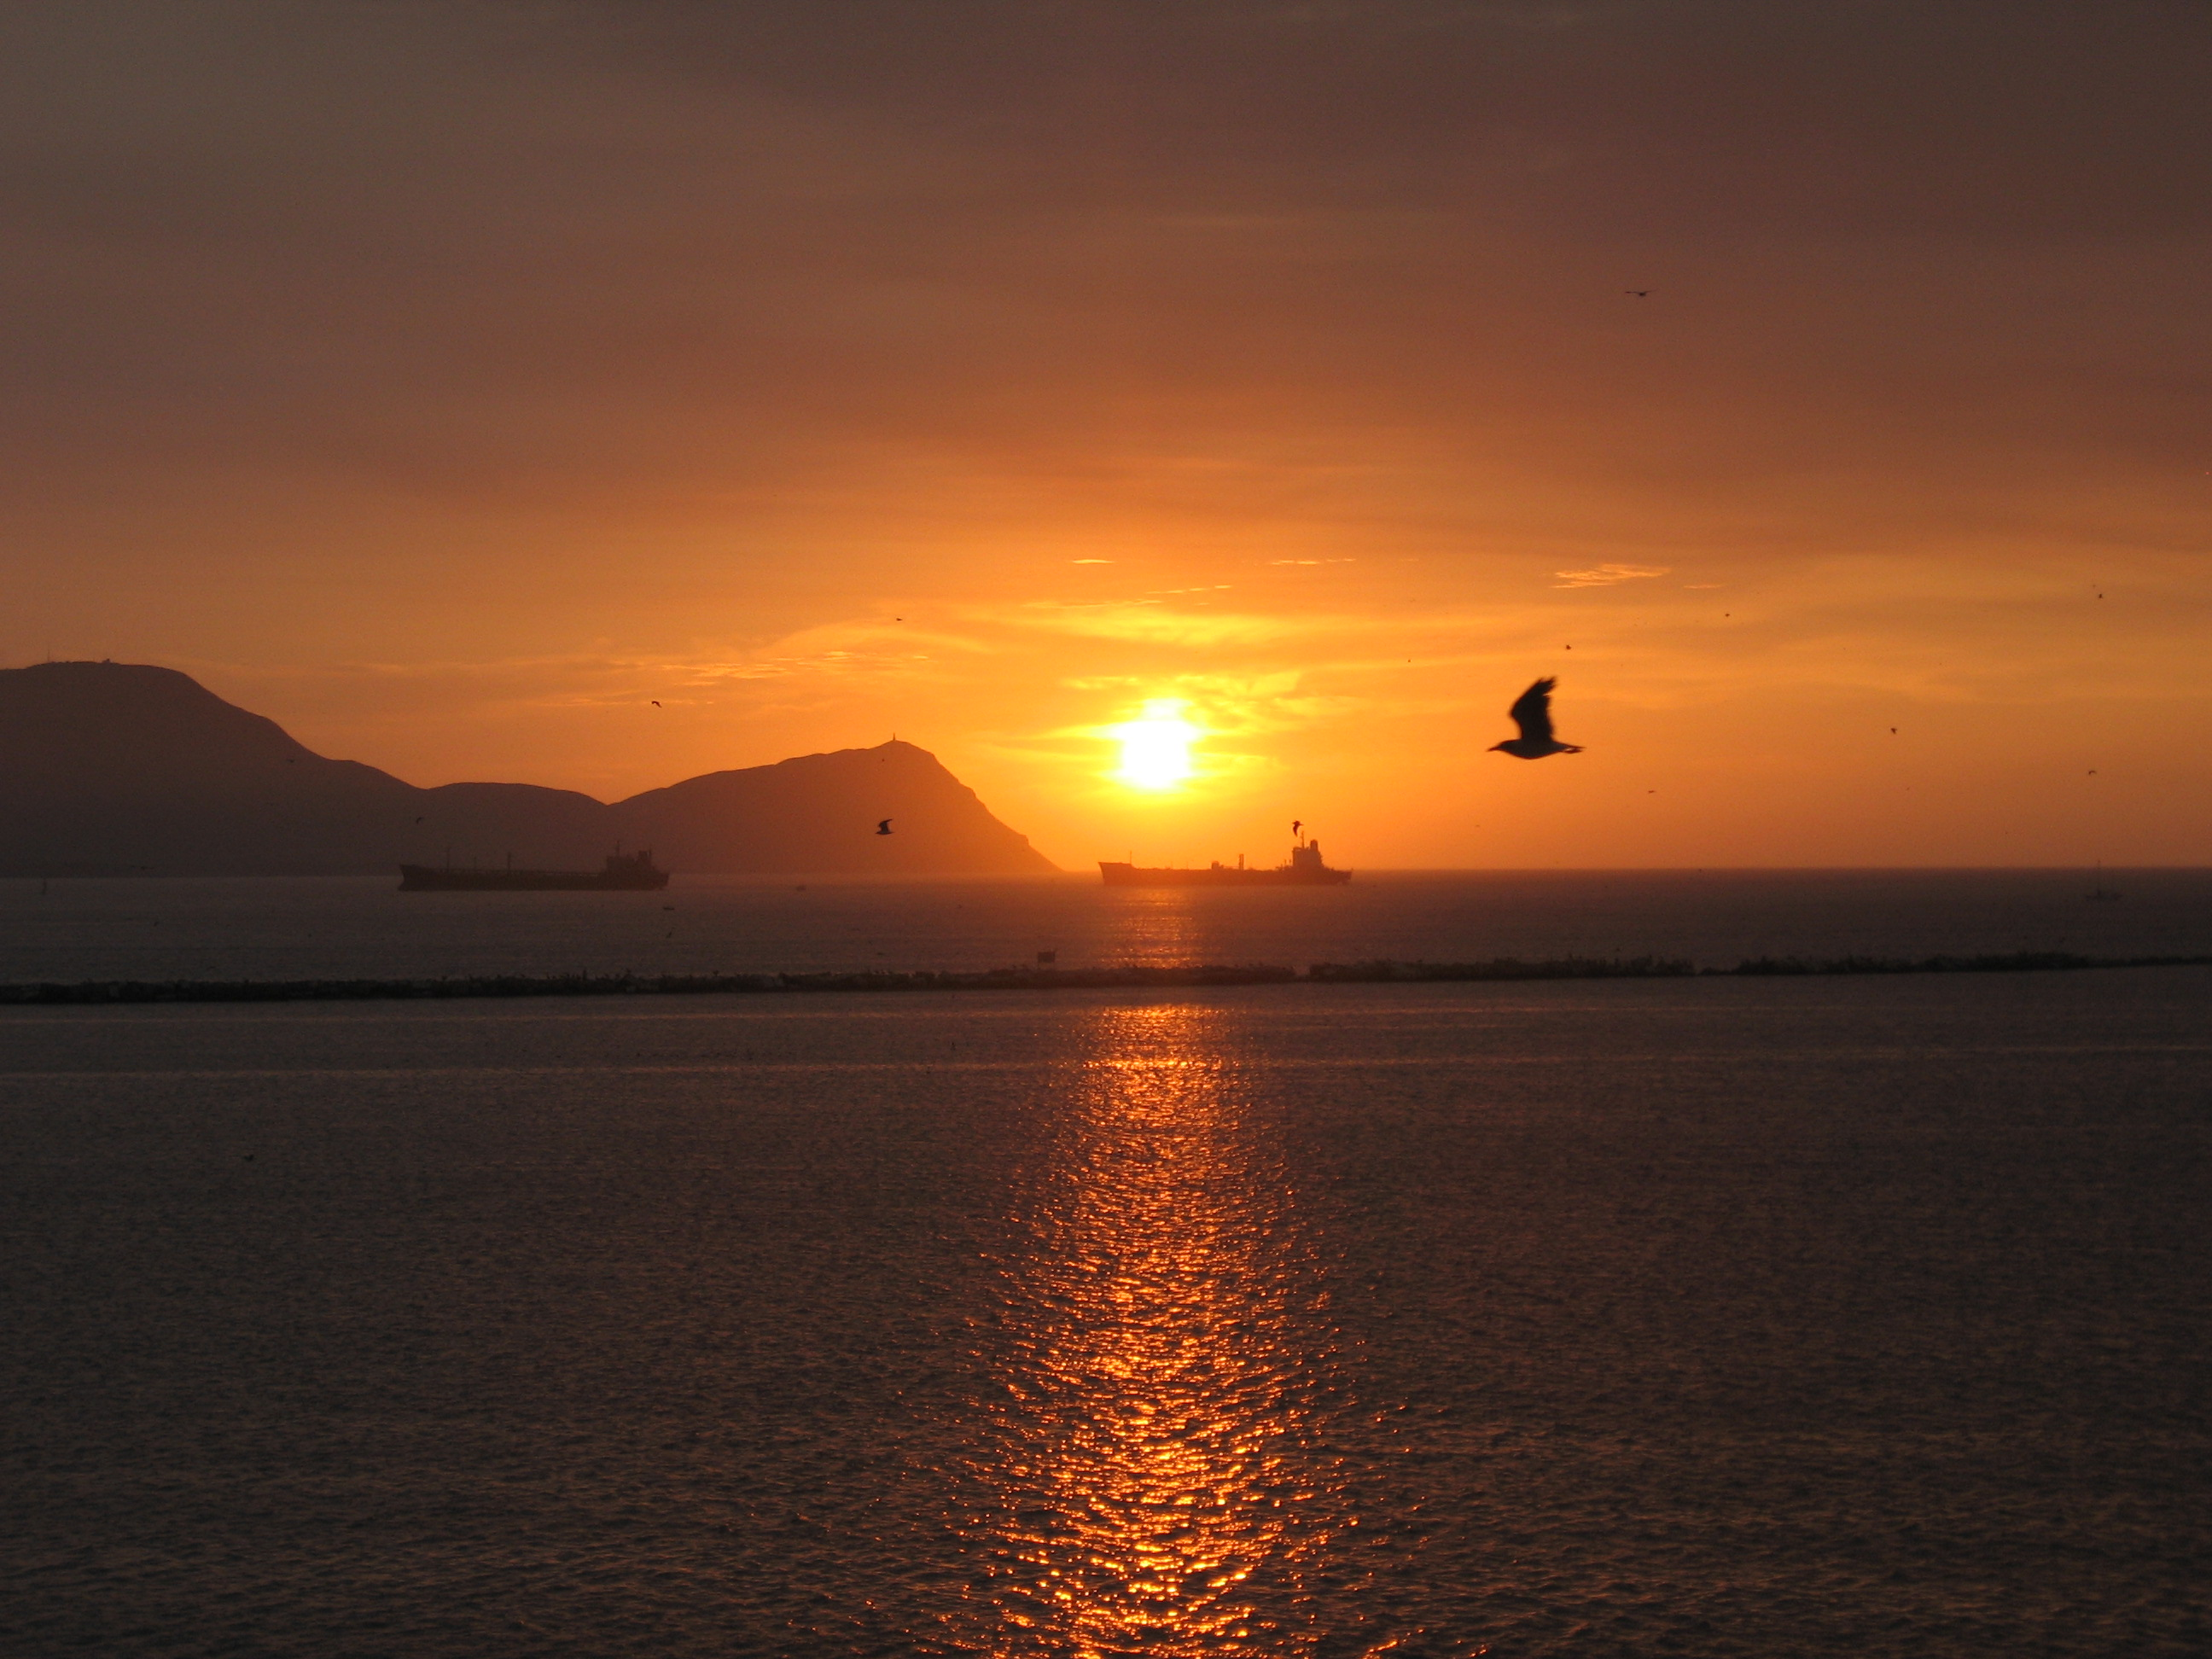 the-beautiful-sunset-as-we-sailaway-toward-quito-thank-you-to-lawrence-for-the-picture